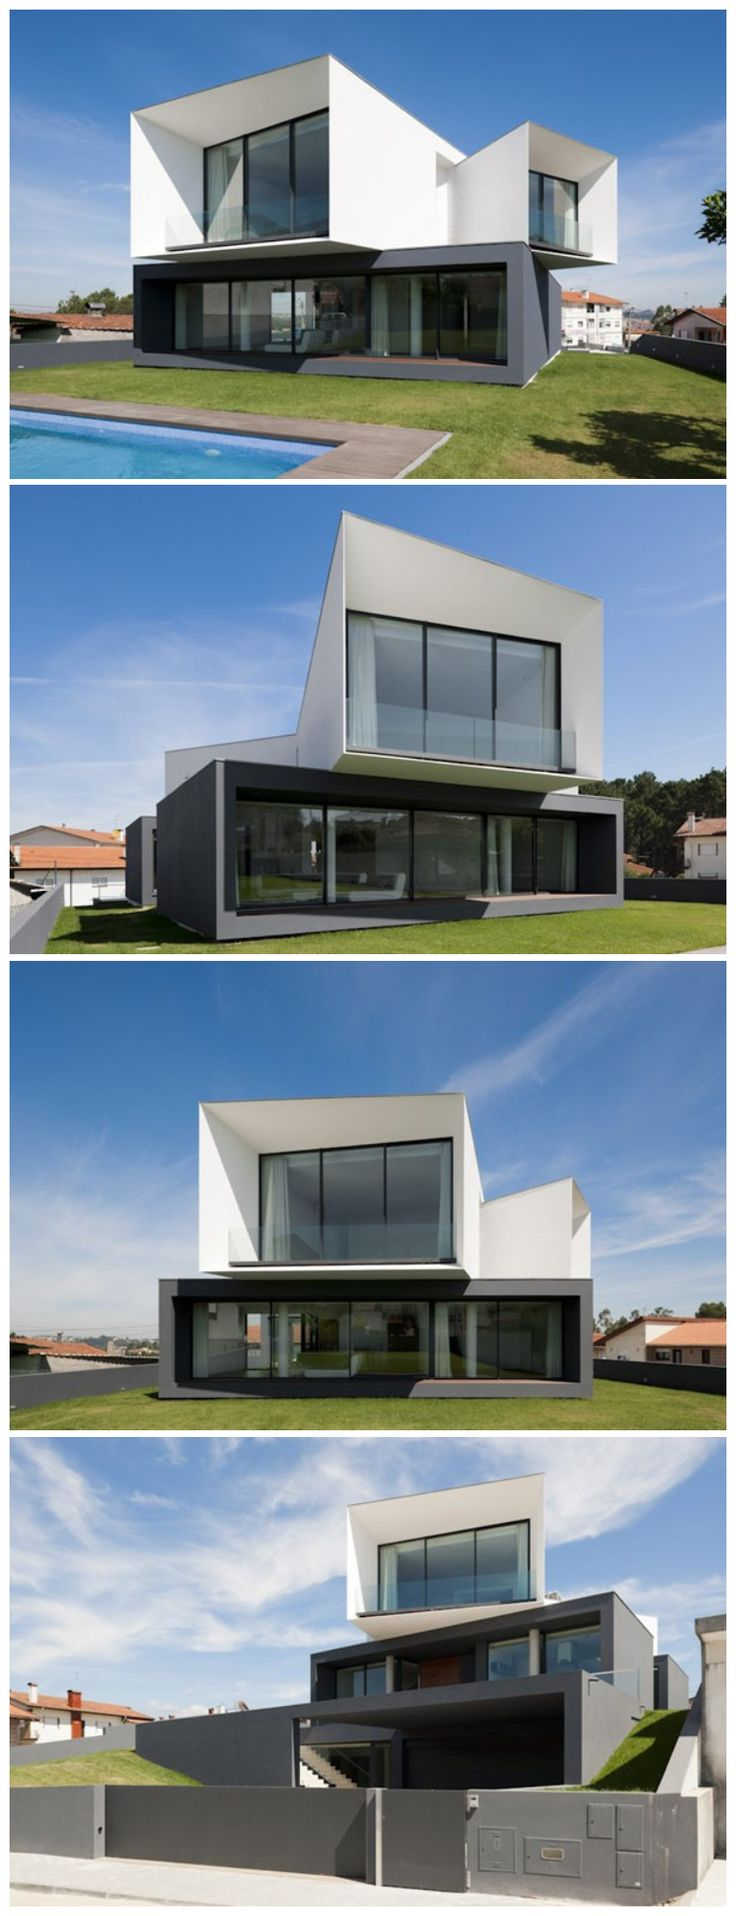 164 best Haus images on Pinterest | House design, Homes and ...